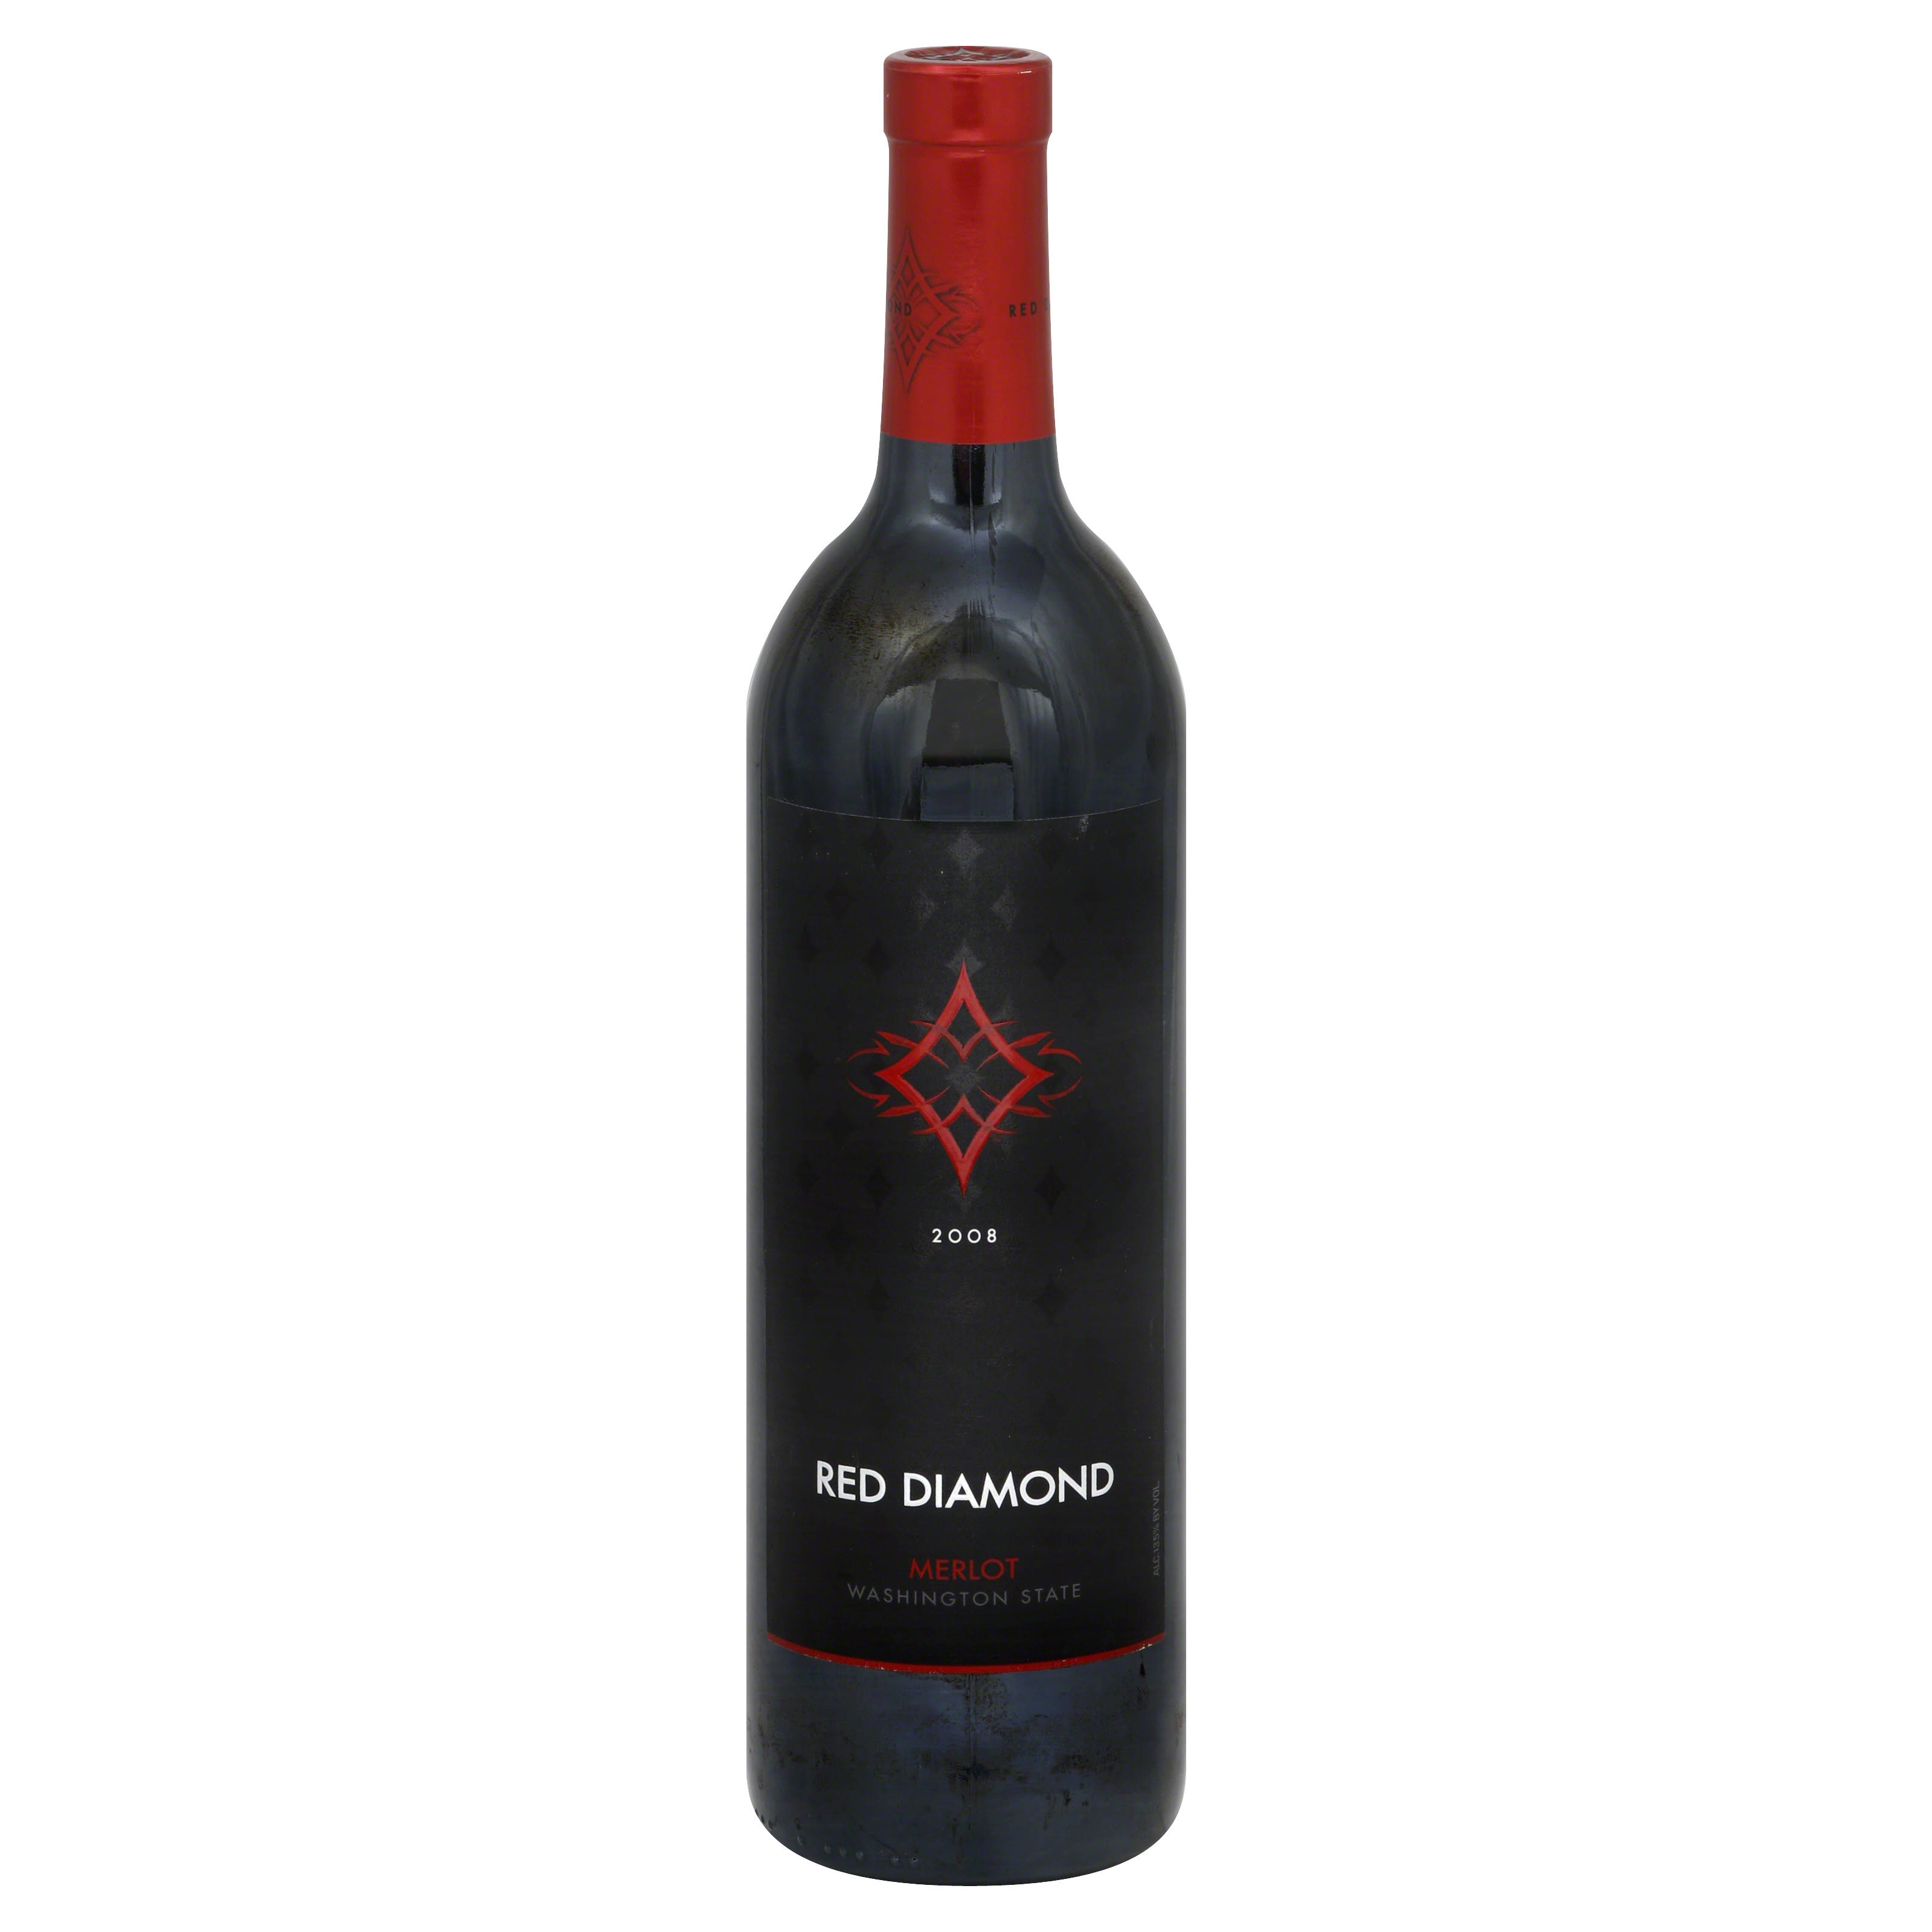 Red Diamond Merlot, Washington State, 2008 - 750 ml